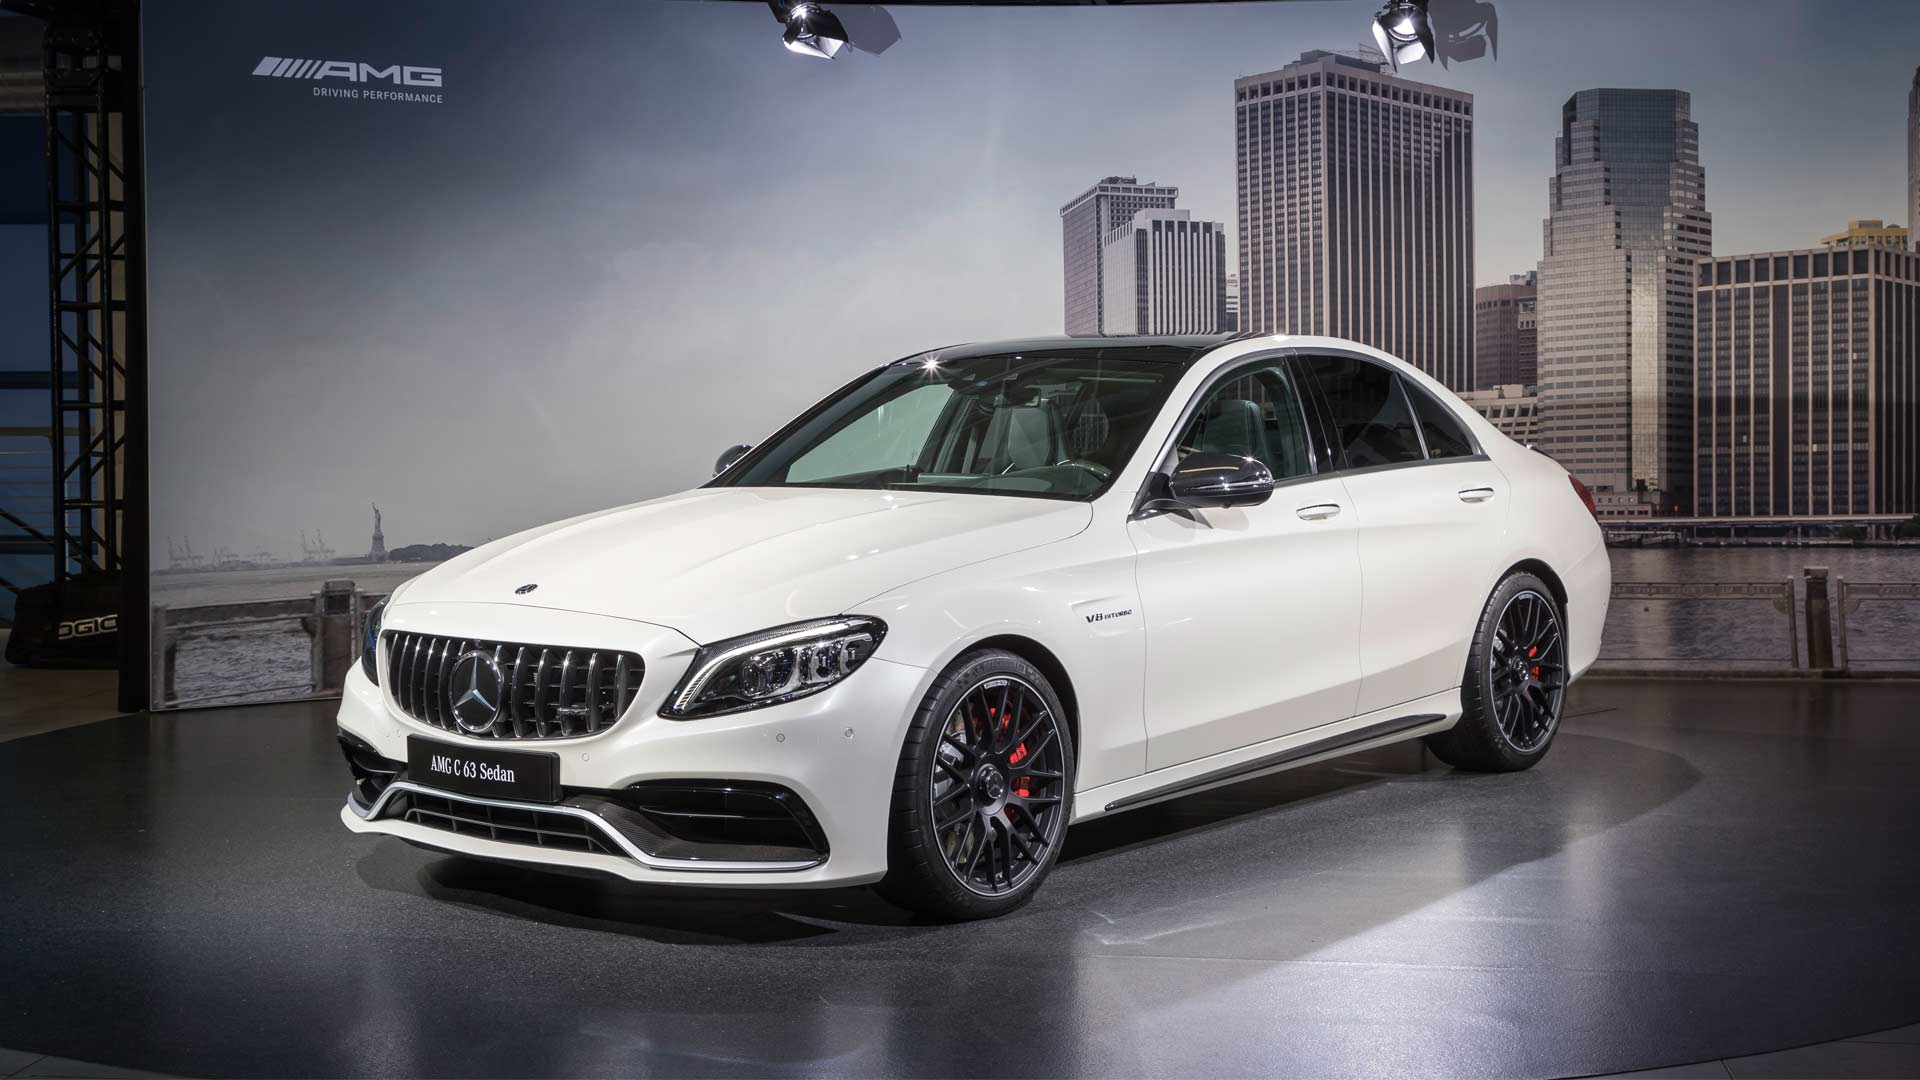 Mercedes' next C63 will be a hybrid, says AMG boss - Roadshow